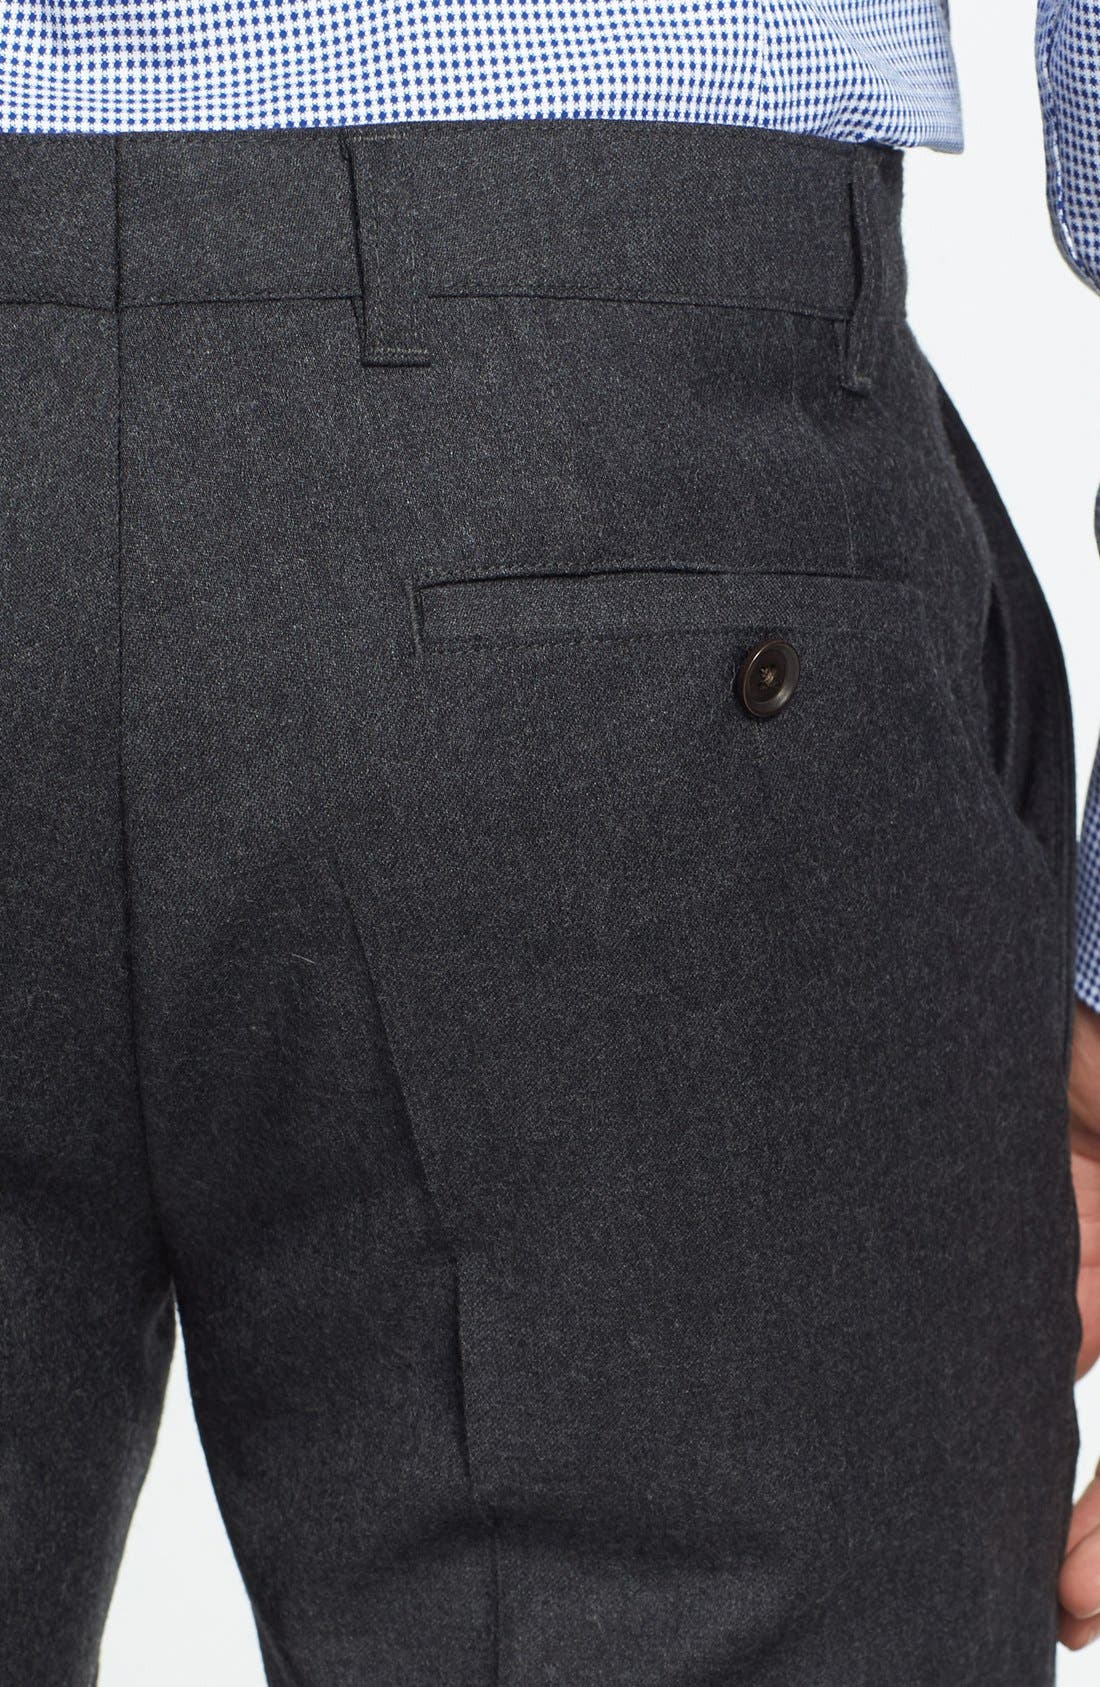 Alternate Image 3  - BOSS HUGO BOSS 'Winng' Flat Front Trousers (Online Only)